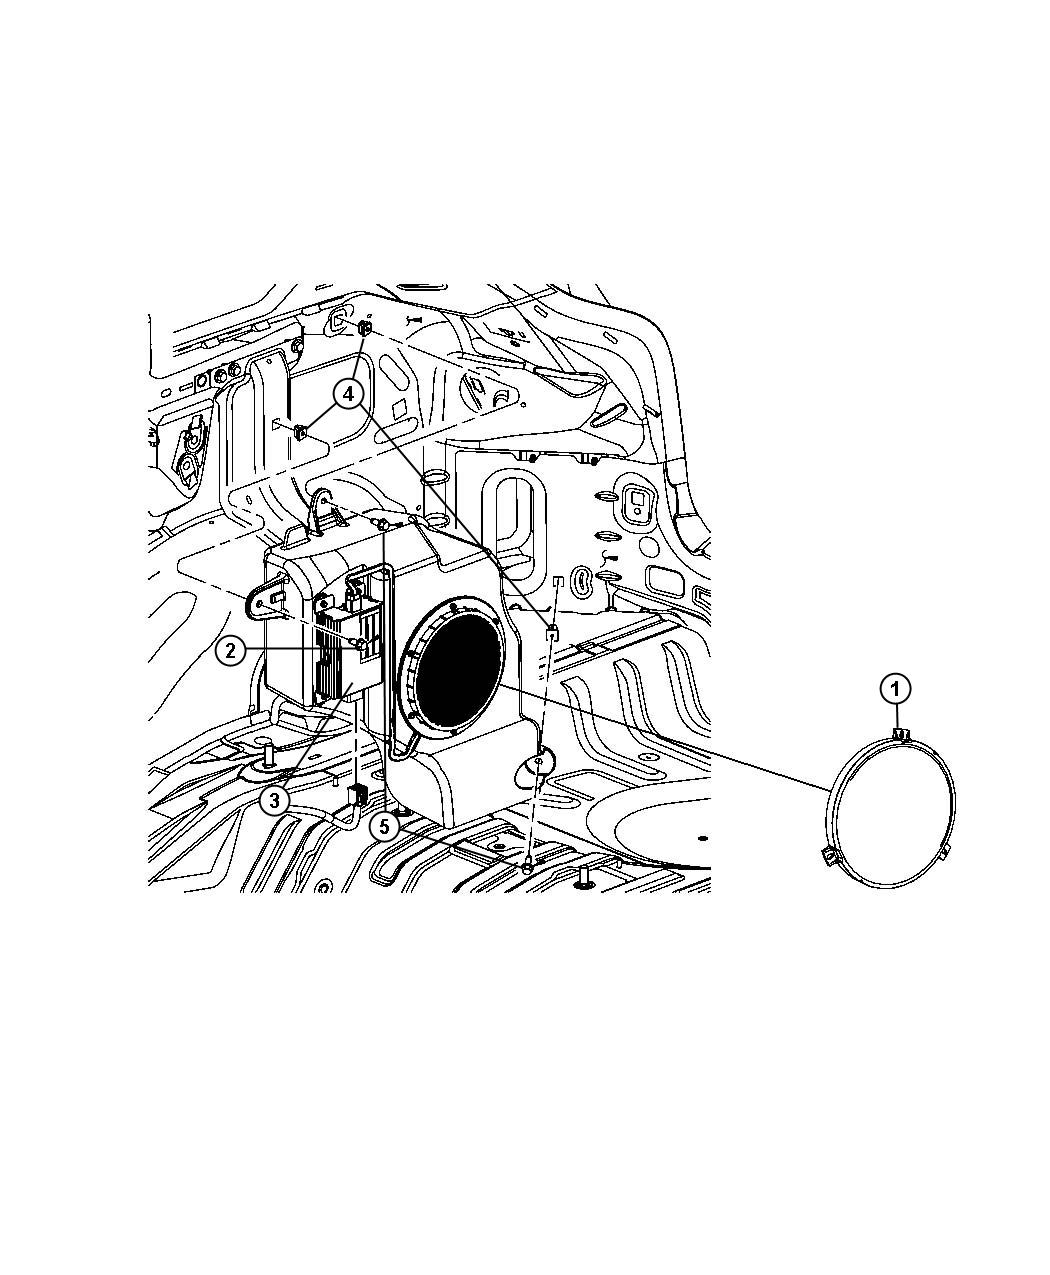 Jeep Wrangler Unlimited Coloring Pages